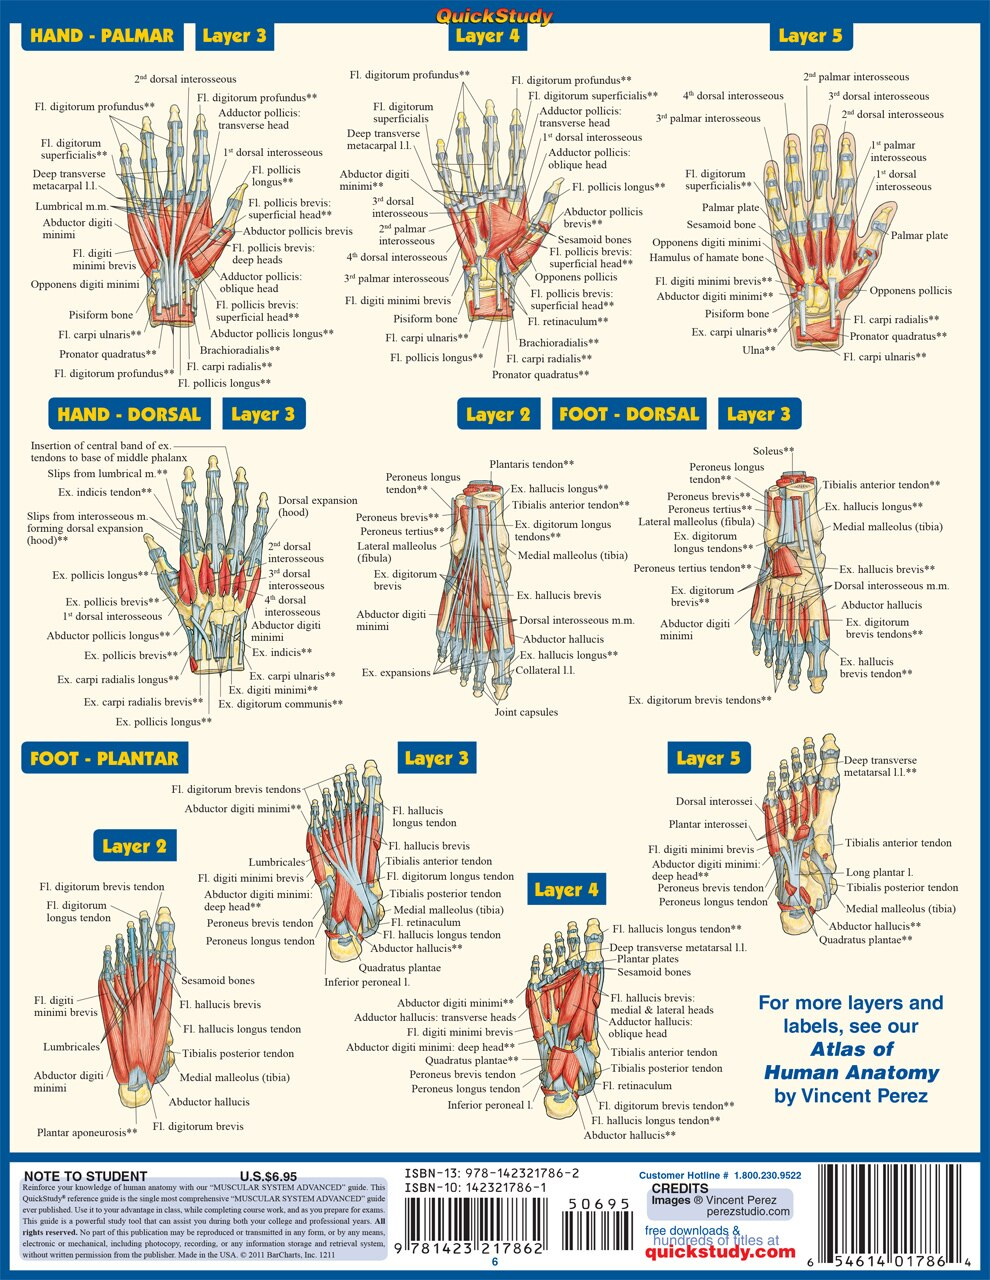 Quick Study QuickStudy Muscular System Advanced Laminated Study Guide BarCharts Publishing Academic Medical Guide Back Image